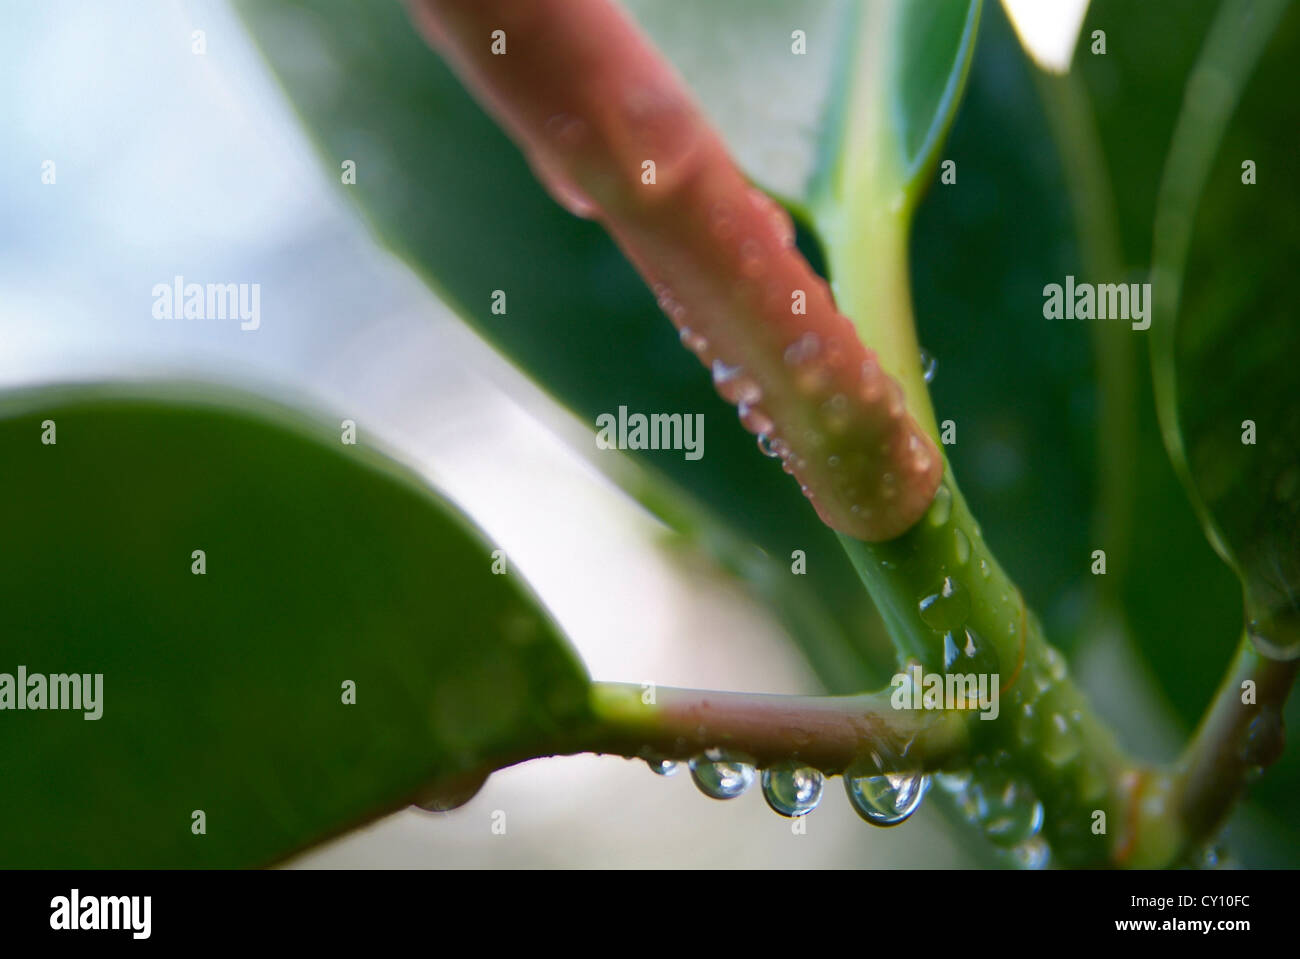 Ficus leaves with dew drops, Valencia, Spain - Stock Image